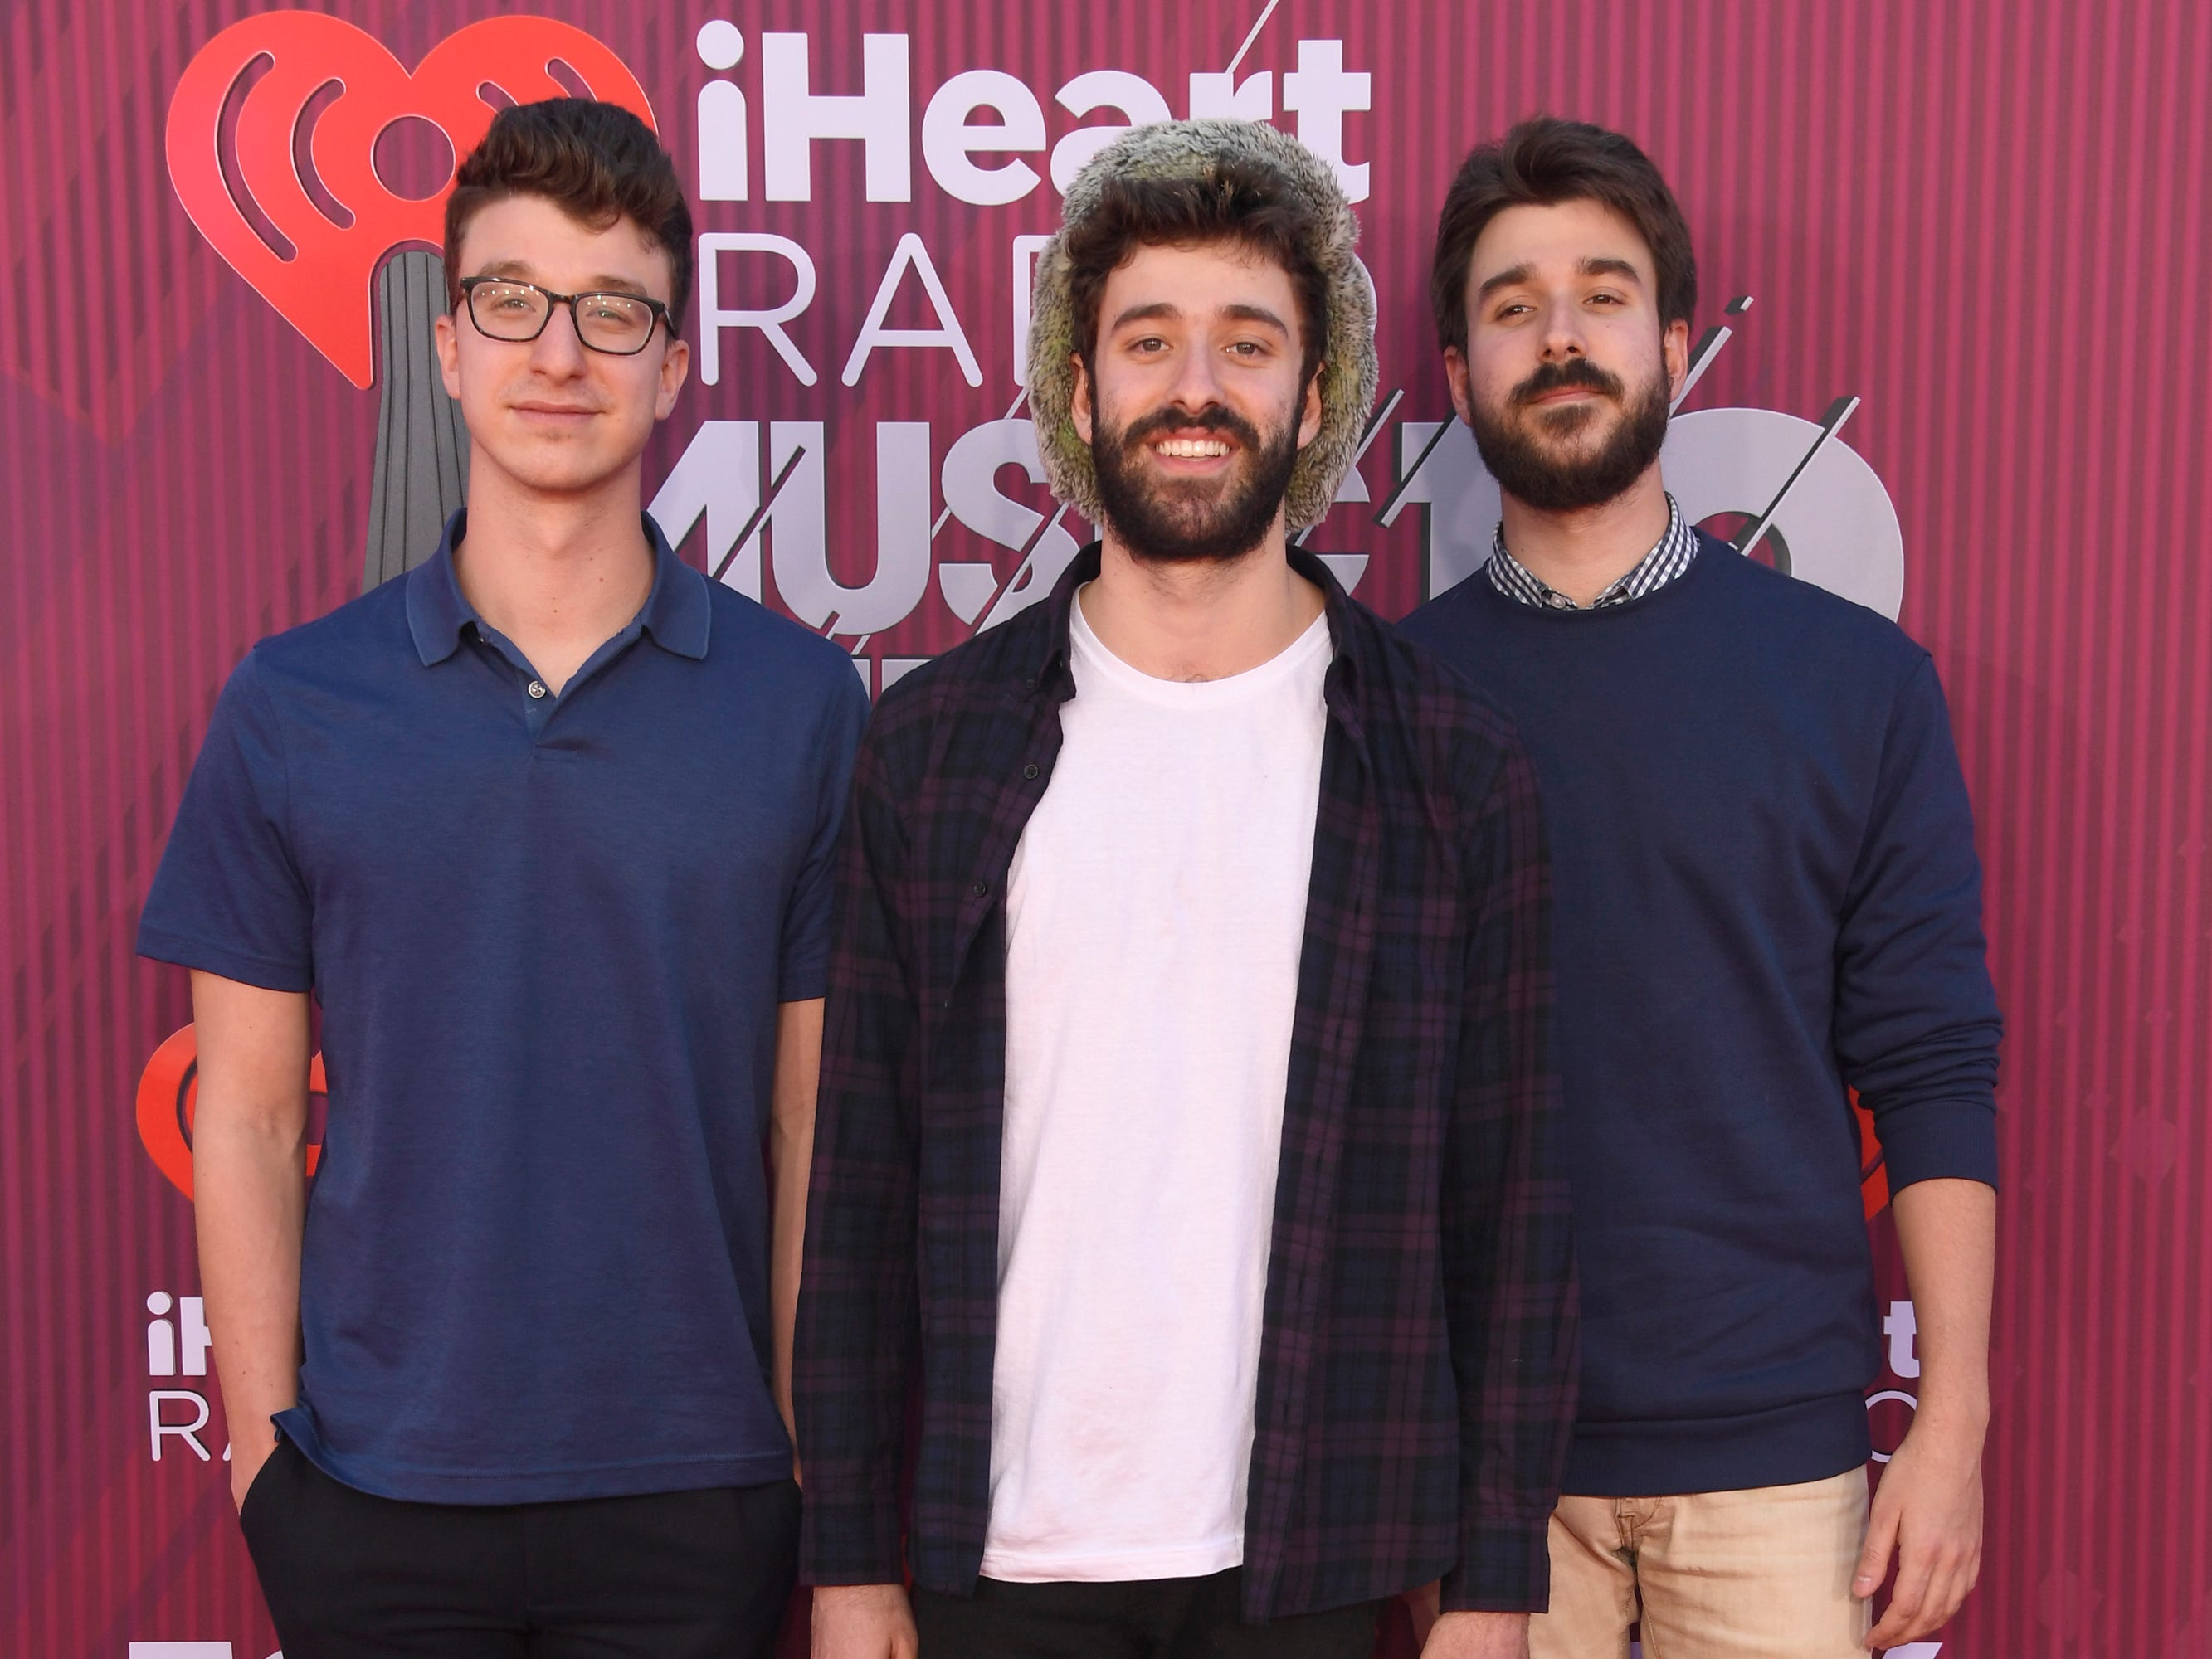 Ryan Joshua Met, Jack Evan Met, and Adam Brett Met of AJR arrive at the iHeartRadio Music Awards.